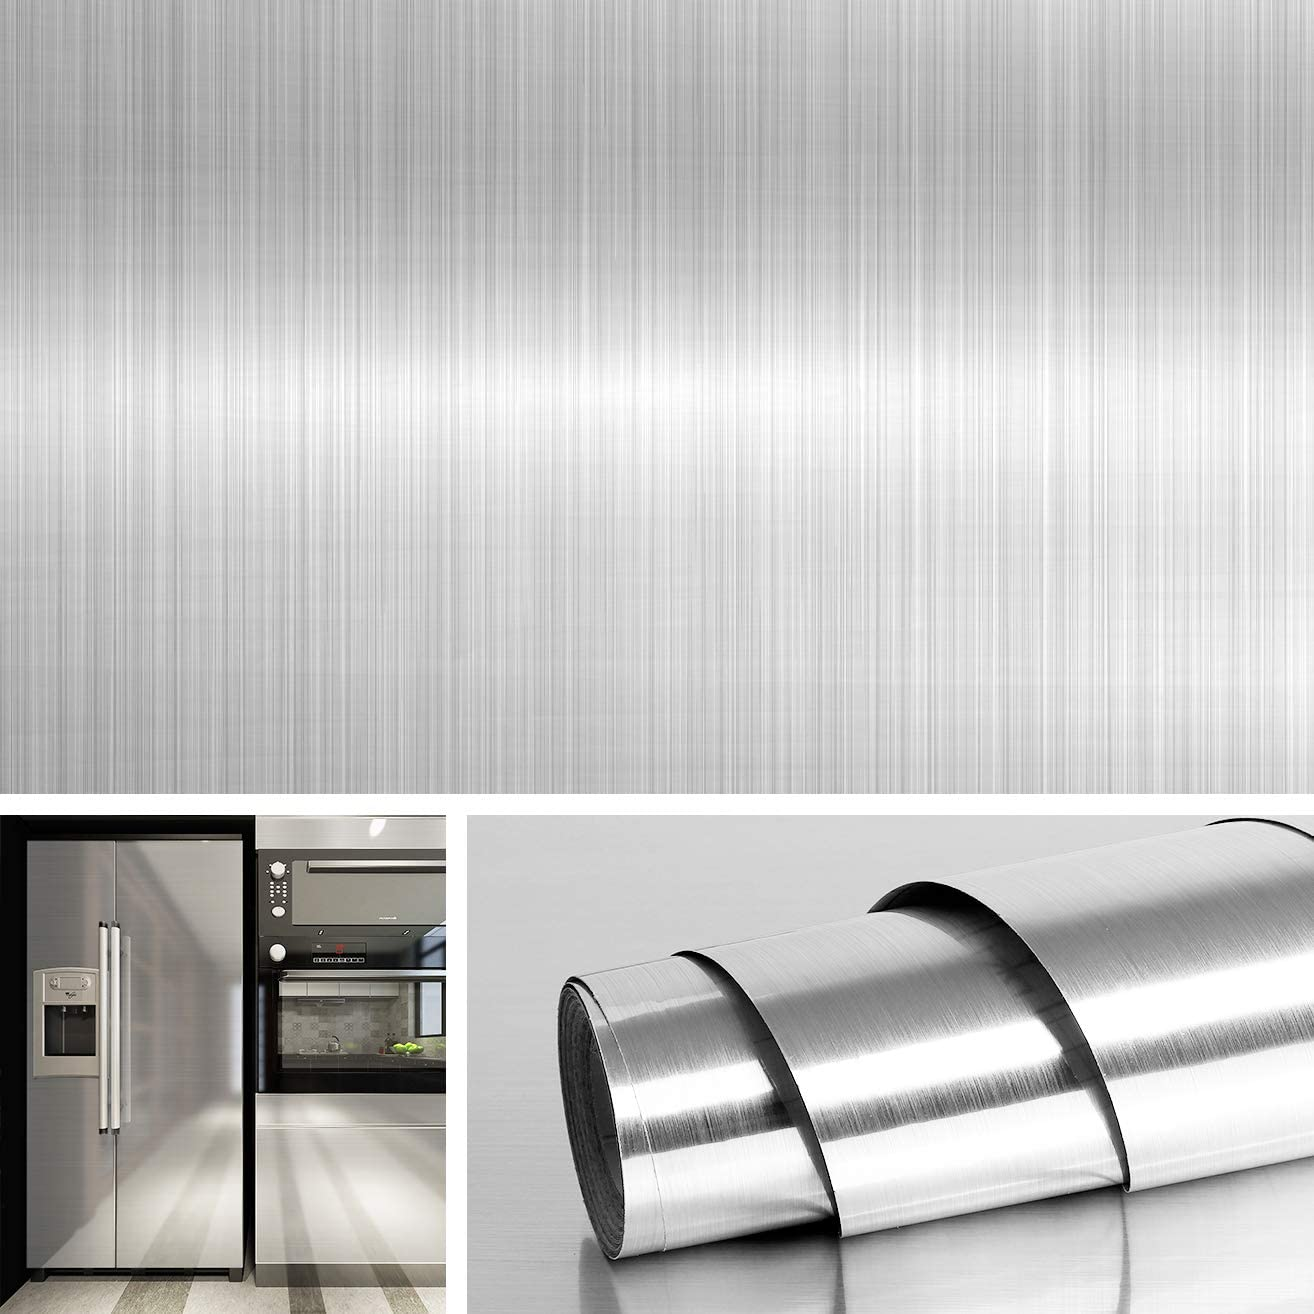 Livelynine 15.8x394 Inch Brushed Nickel Wallpaper Peel and Stick Countertop Stainless Steel Wall Paper Decorative Wall Paper for Kitchen Microwave Dishwasher Refrigerators Oven Dryer Covers